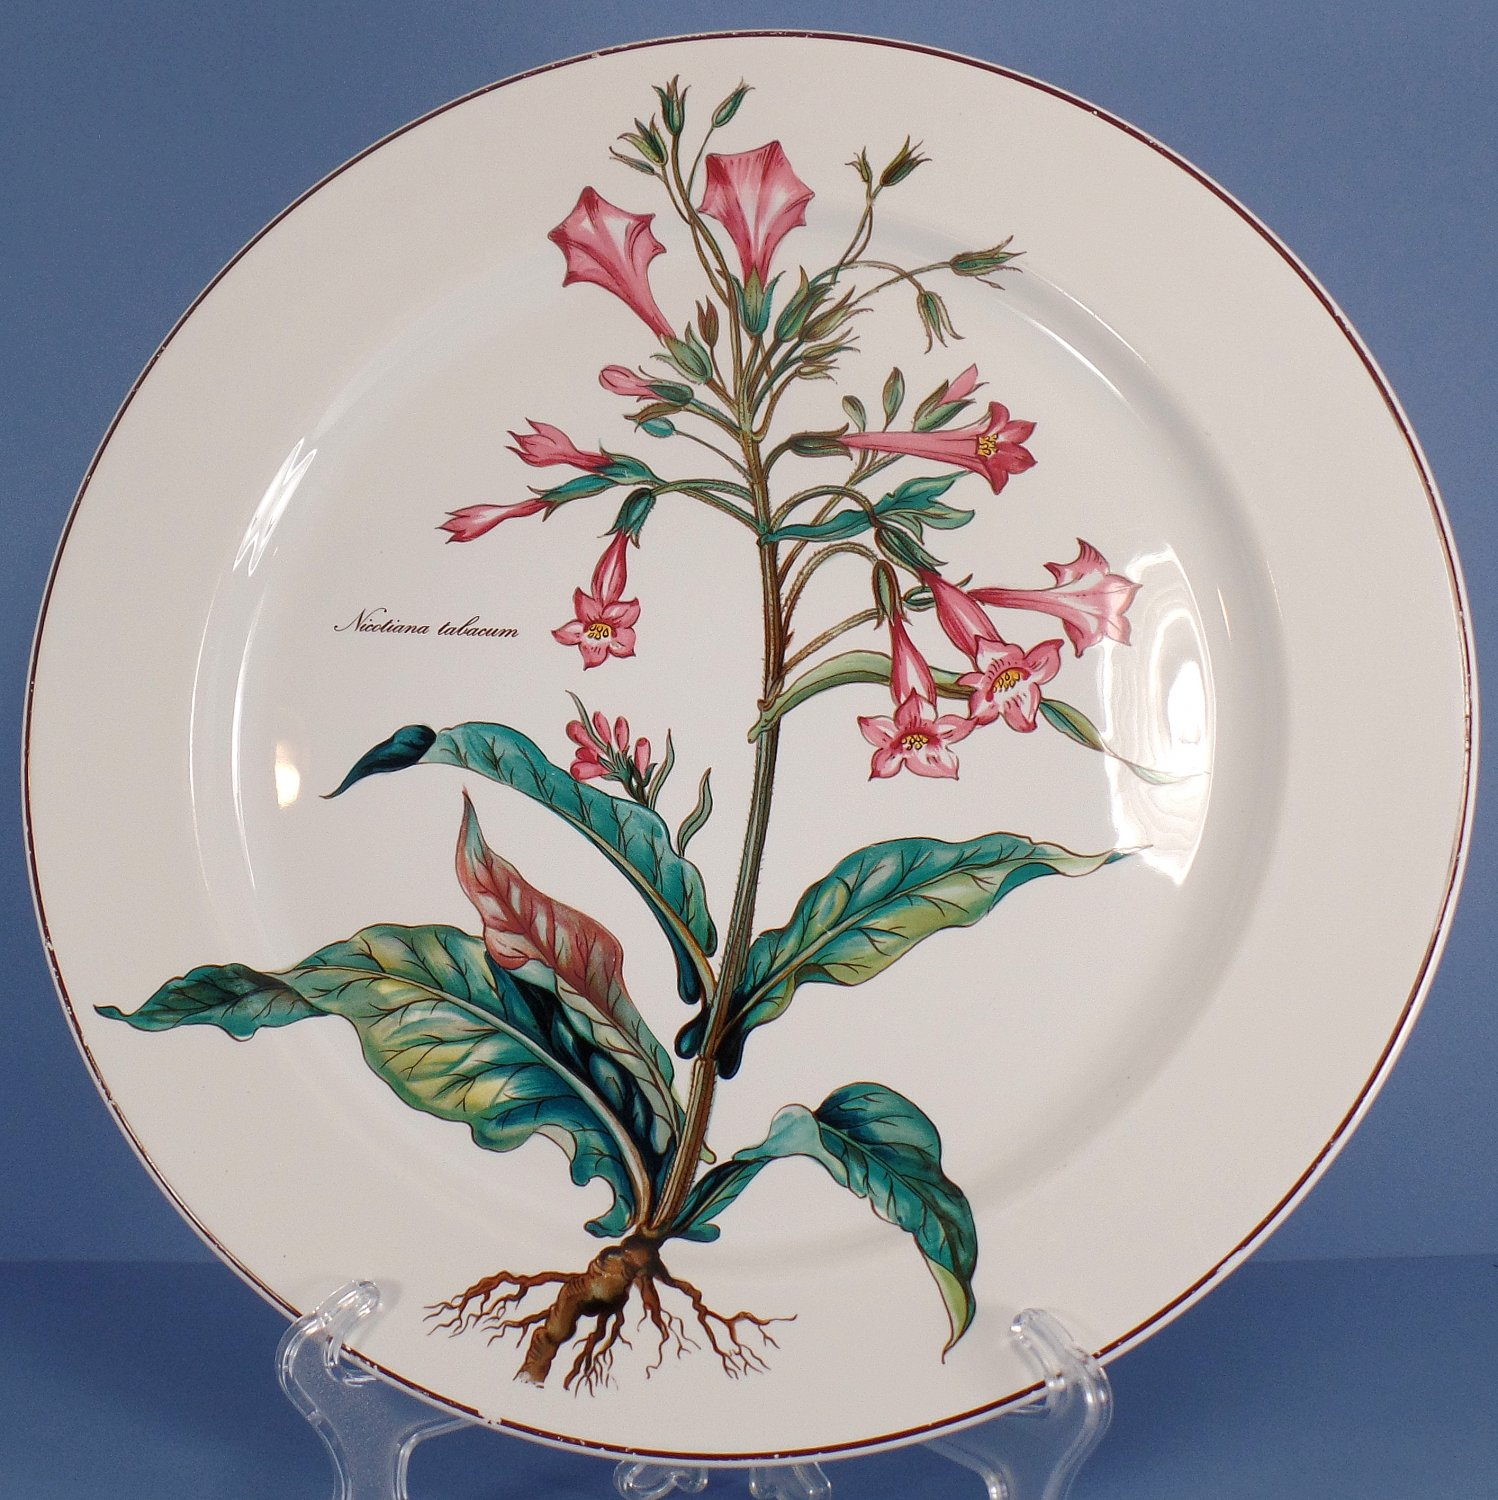 Villeroy & Boch Botanica Chop Plate (Round Platter) 12 Inch - Nicotiana Tabacum -30% off